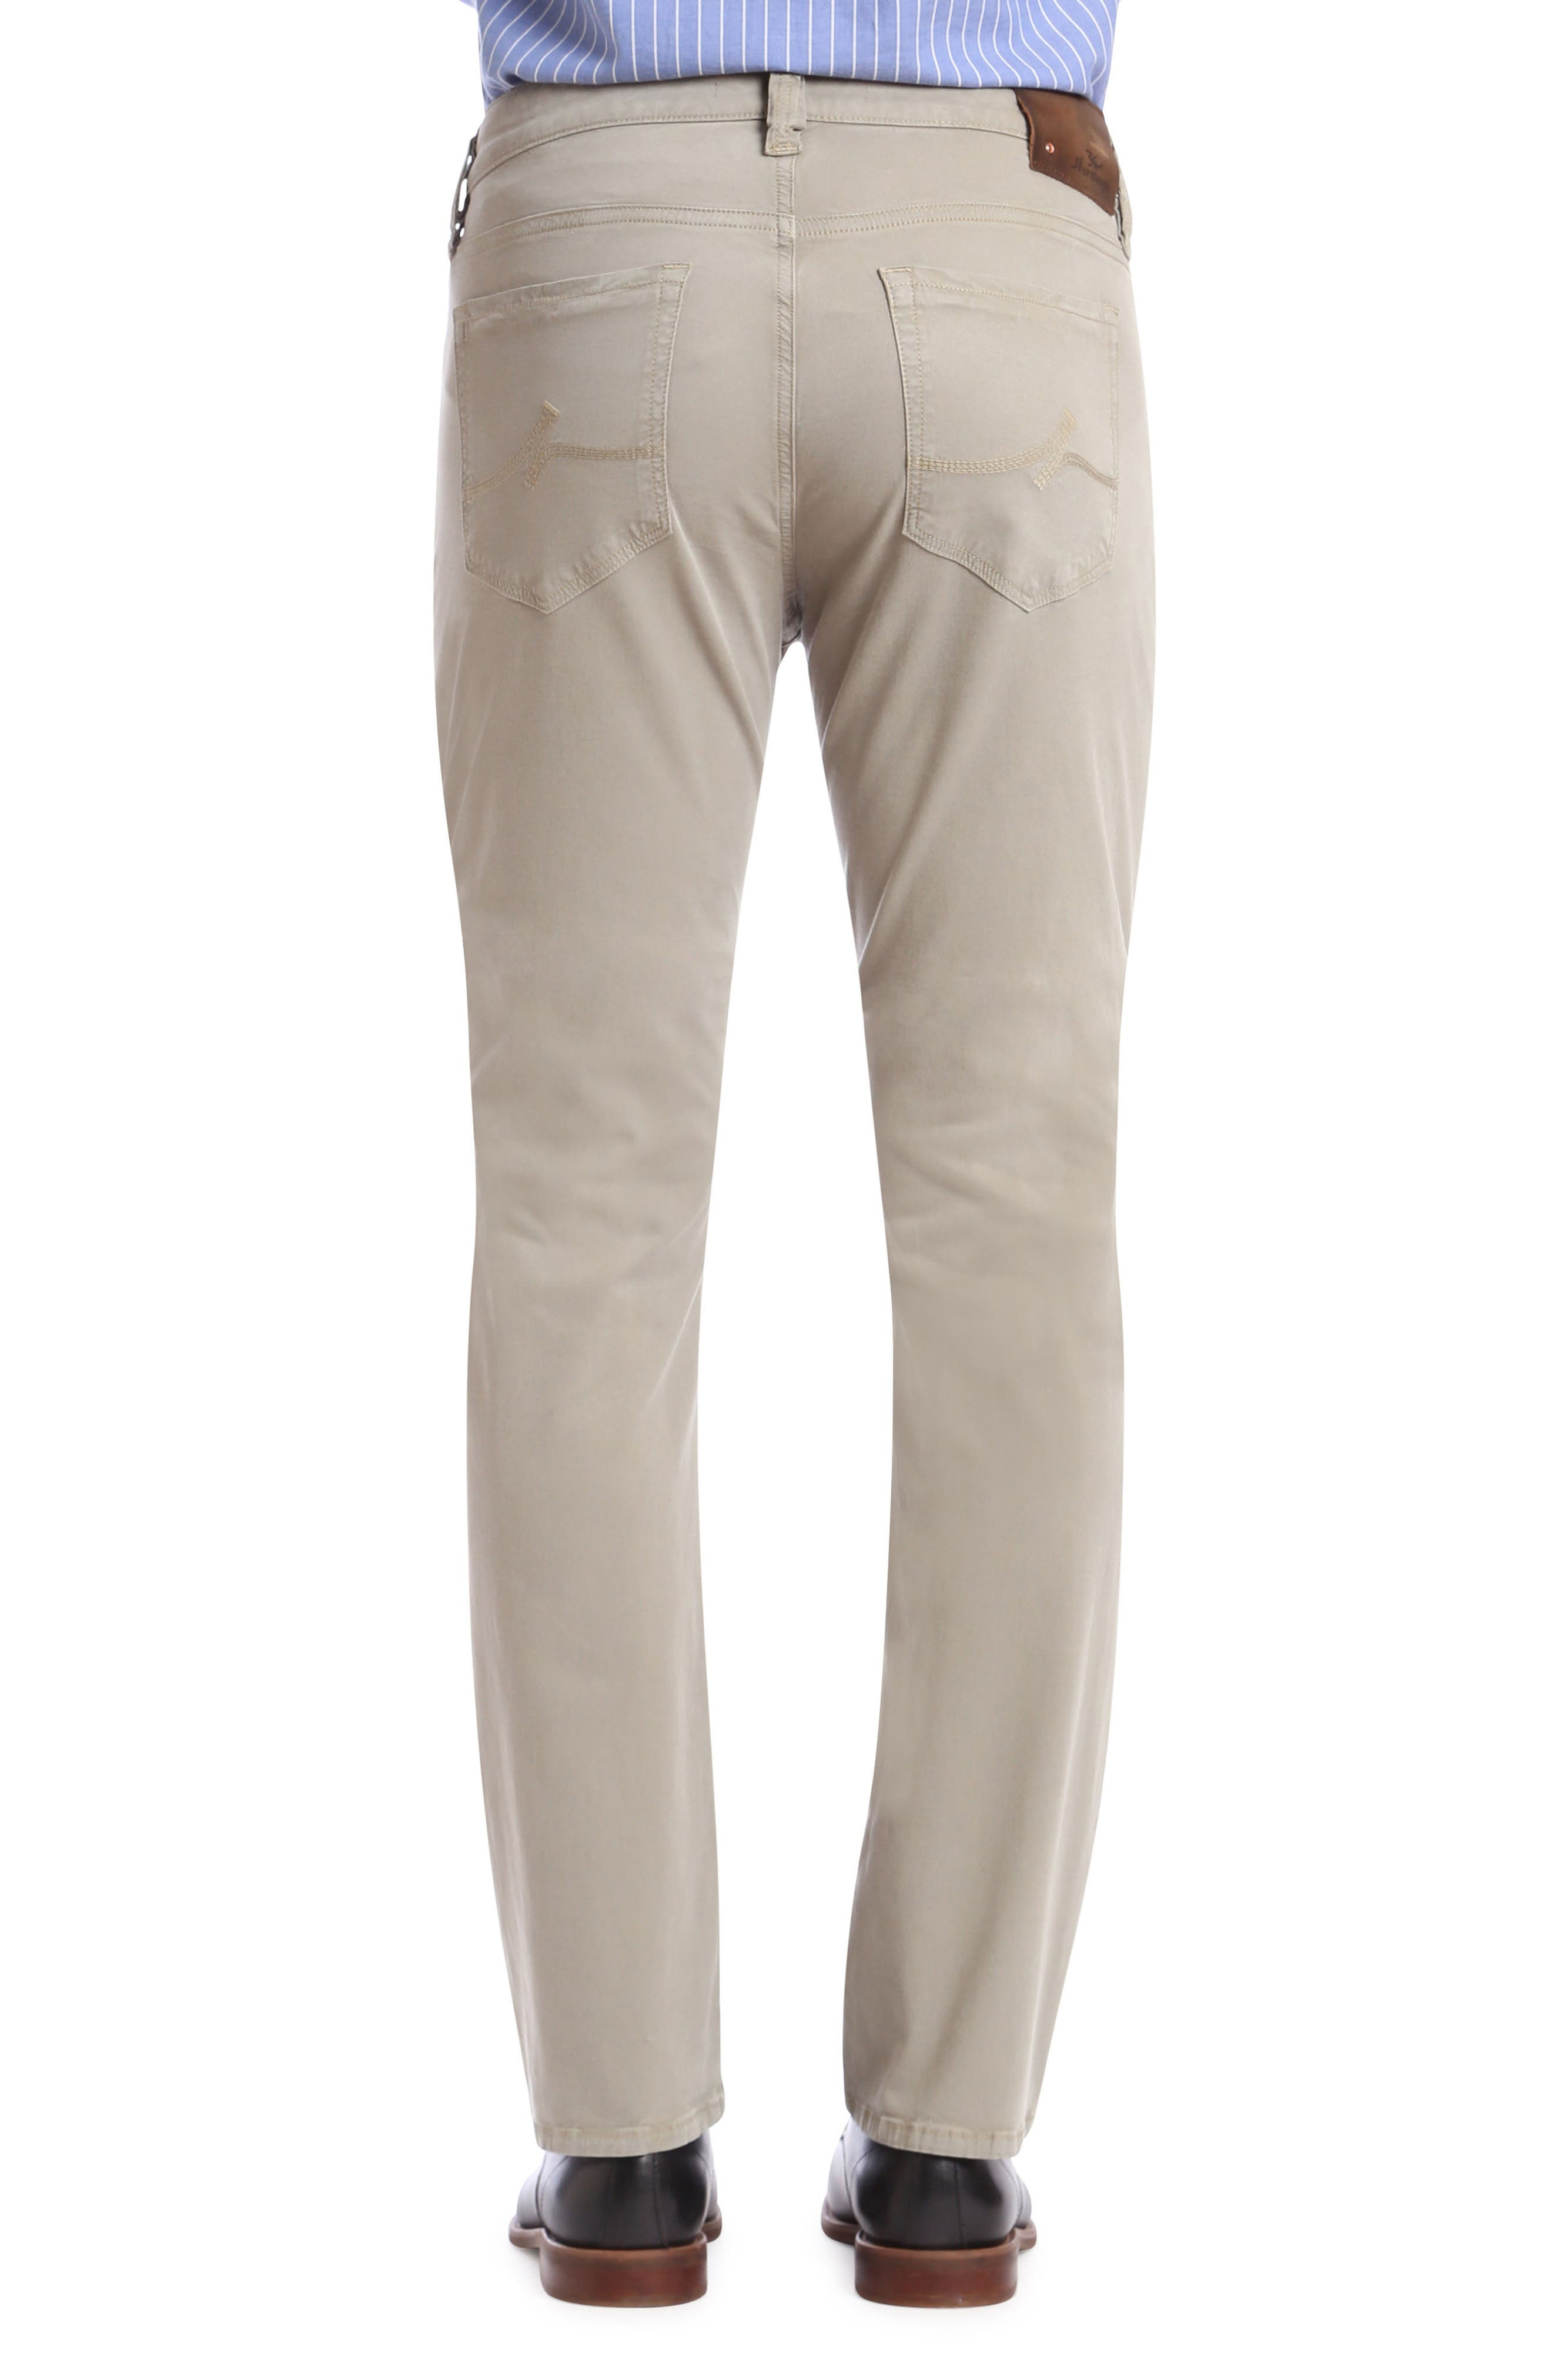 Charisma Relaxed Fit Jeans,                             Alternate thumbnail 2, color,                             FINE TWILL